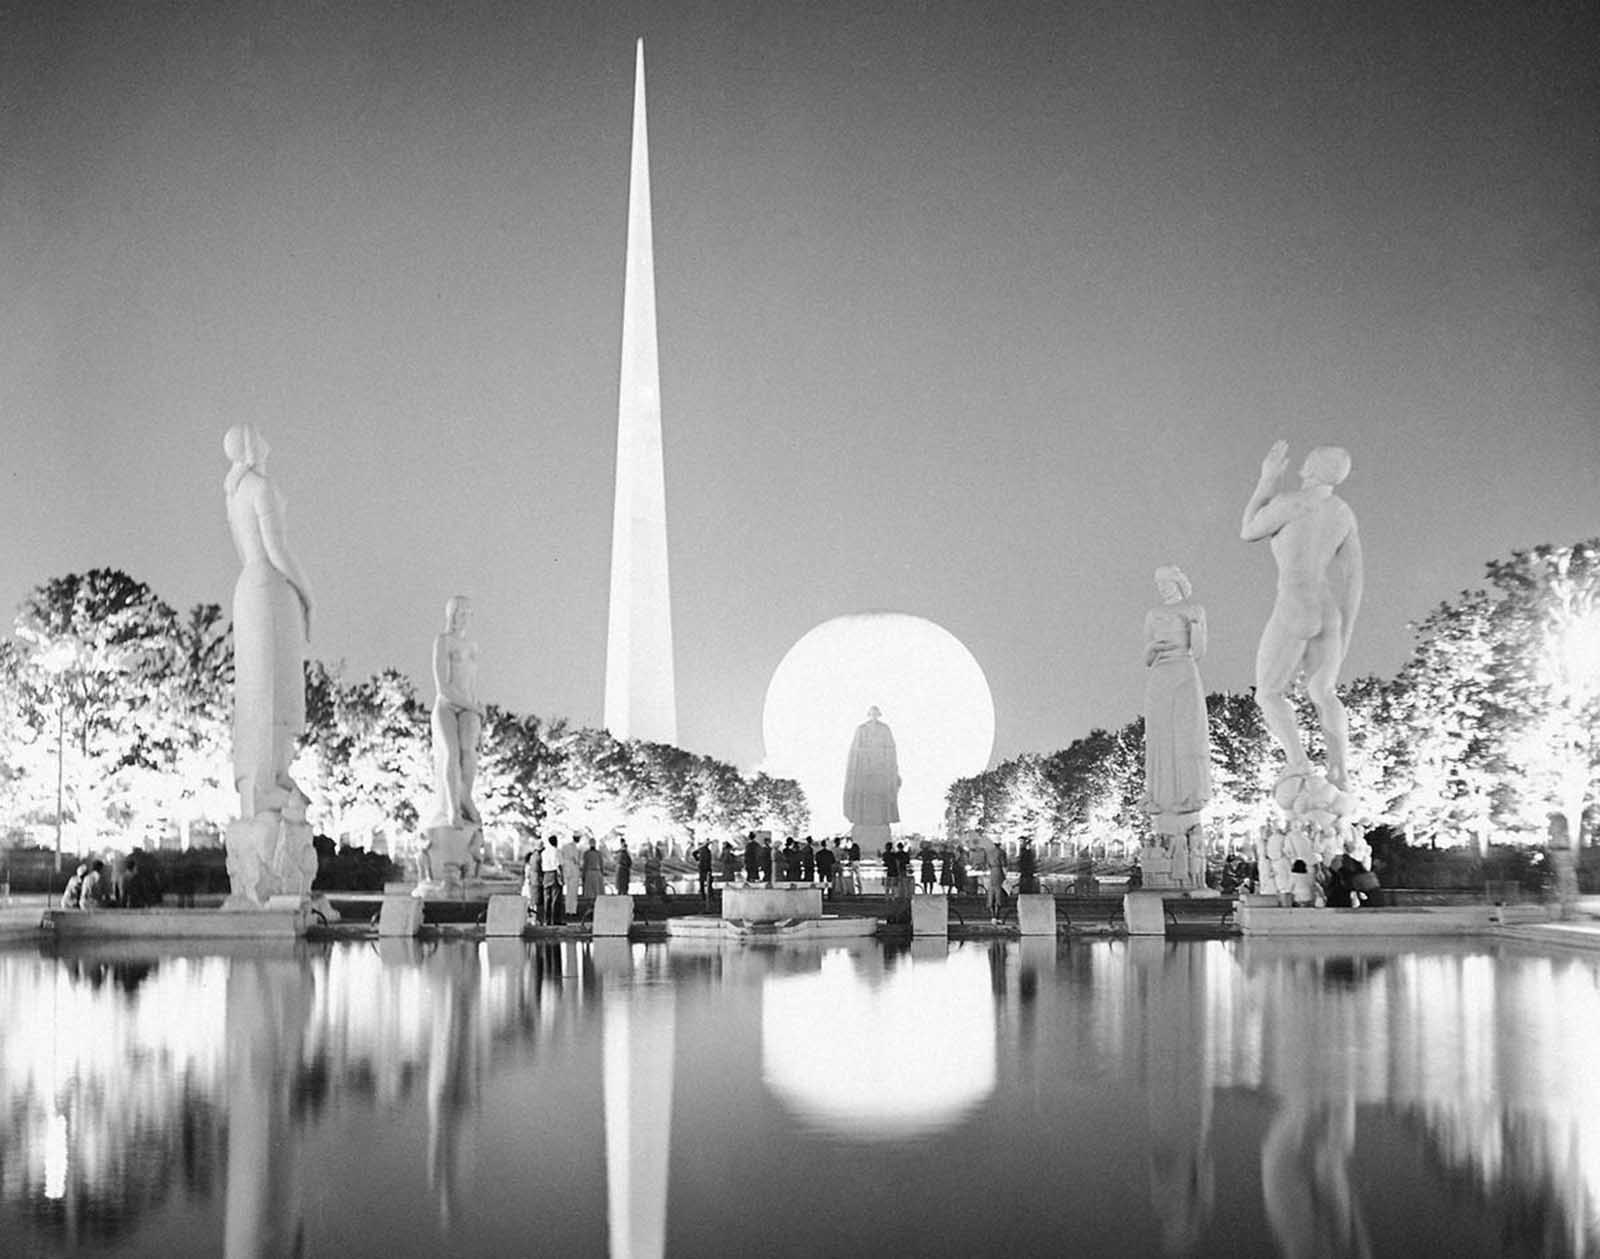 A view taken from the side of one of the many lagoons at the New York World's Fair on July 7, 1939. Light brings out some of the wondrous beauty as erected at the